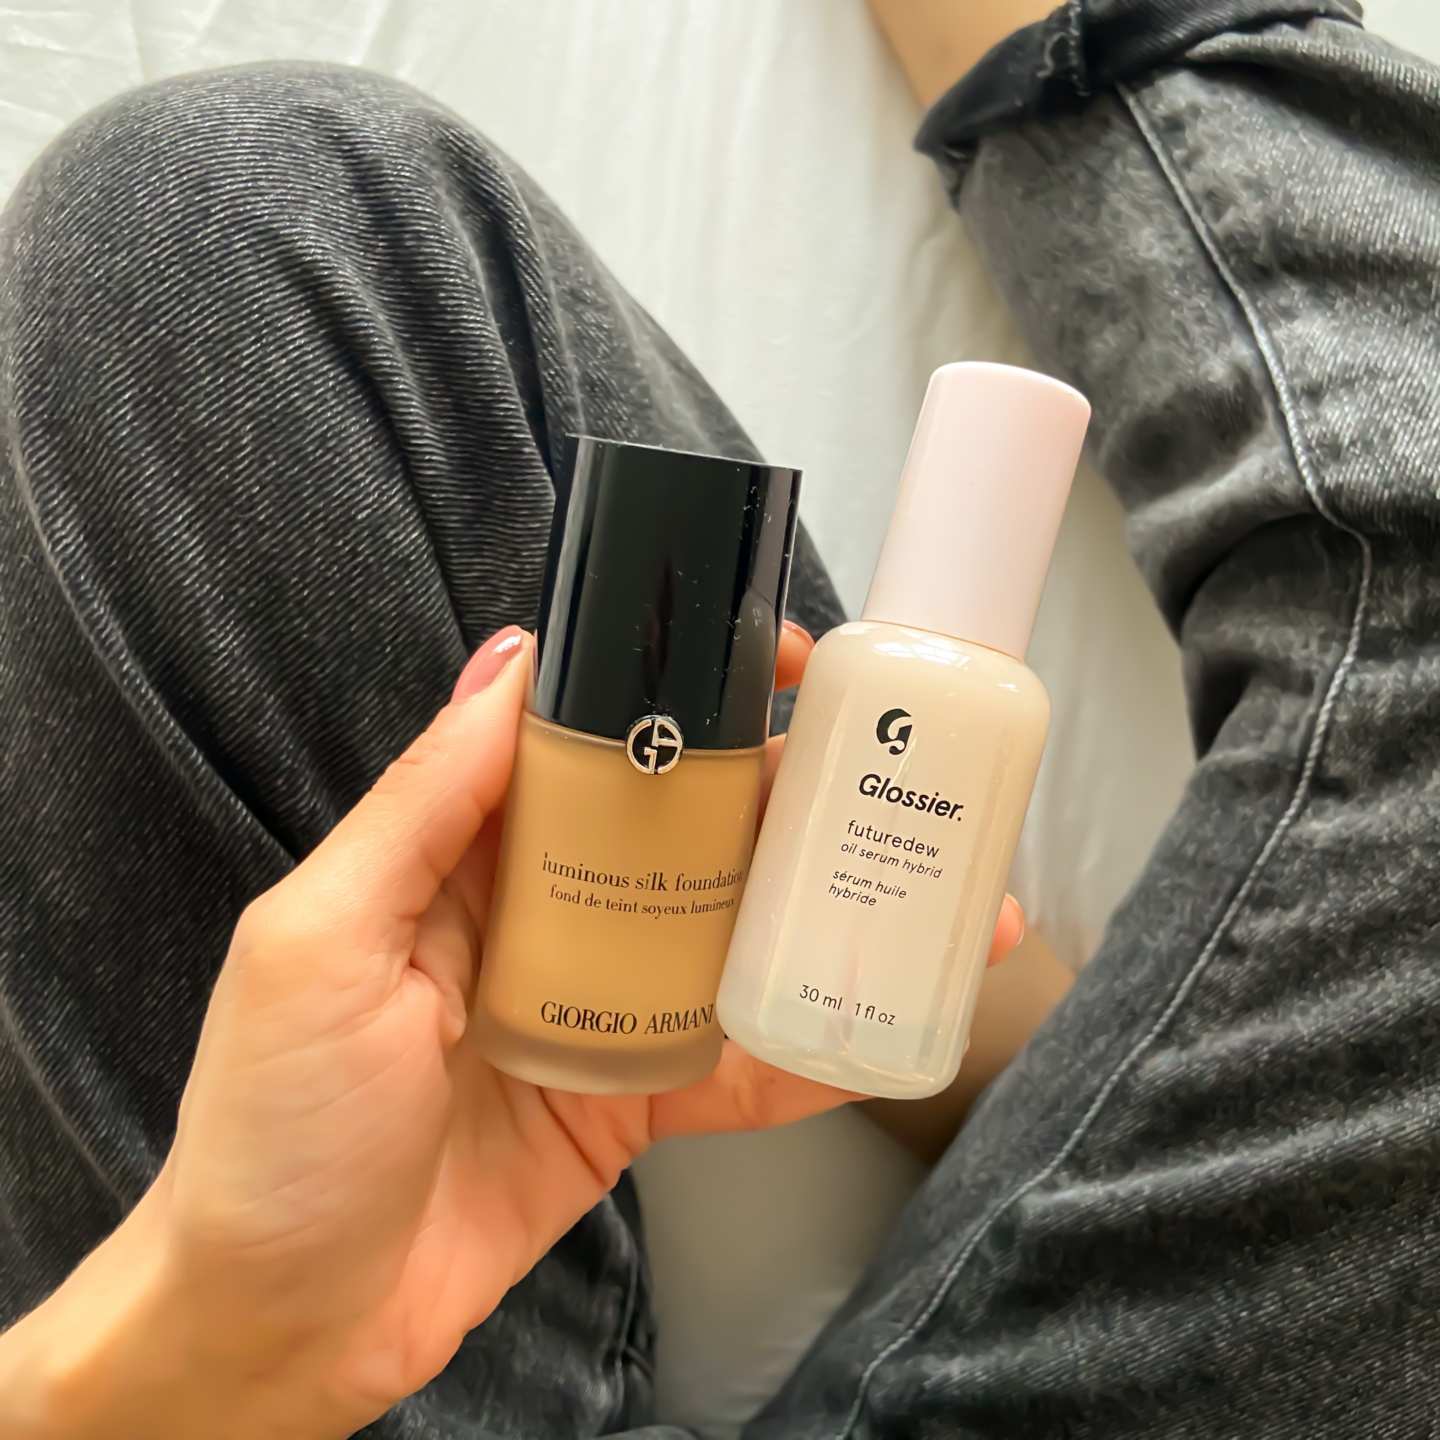 Shop the look - Foundation